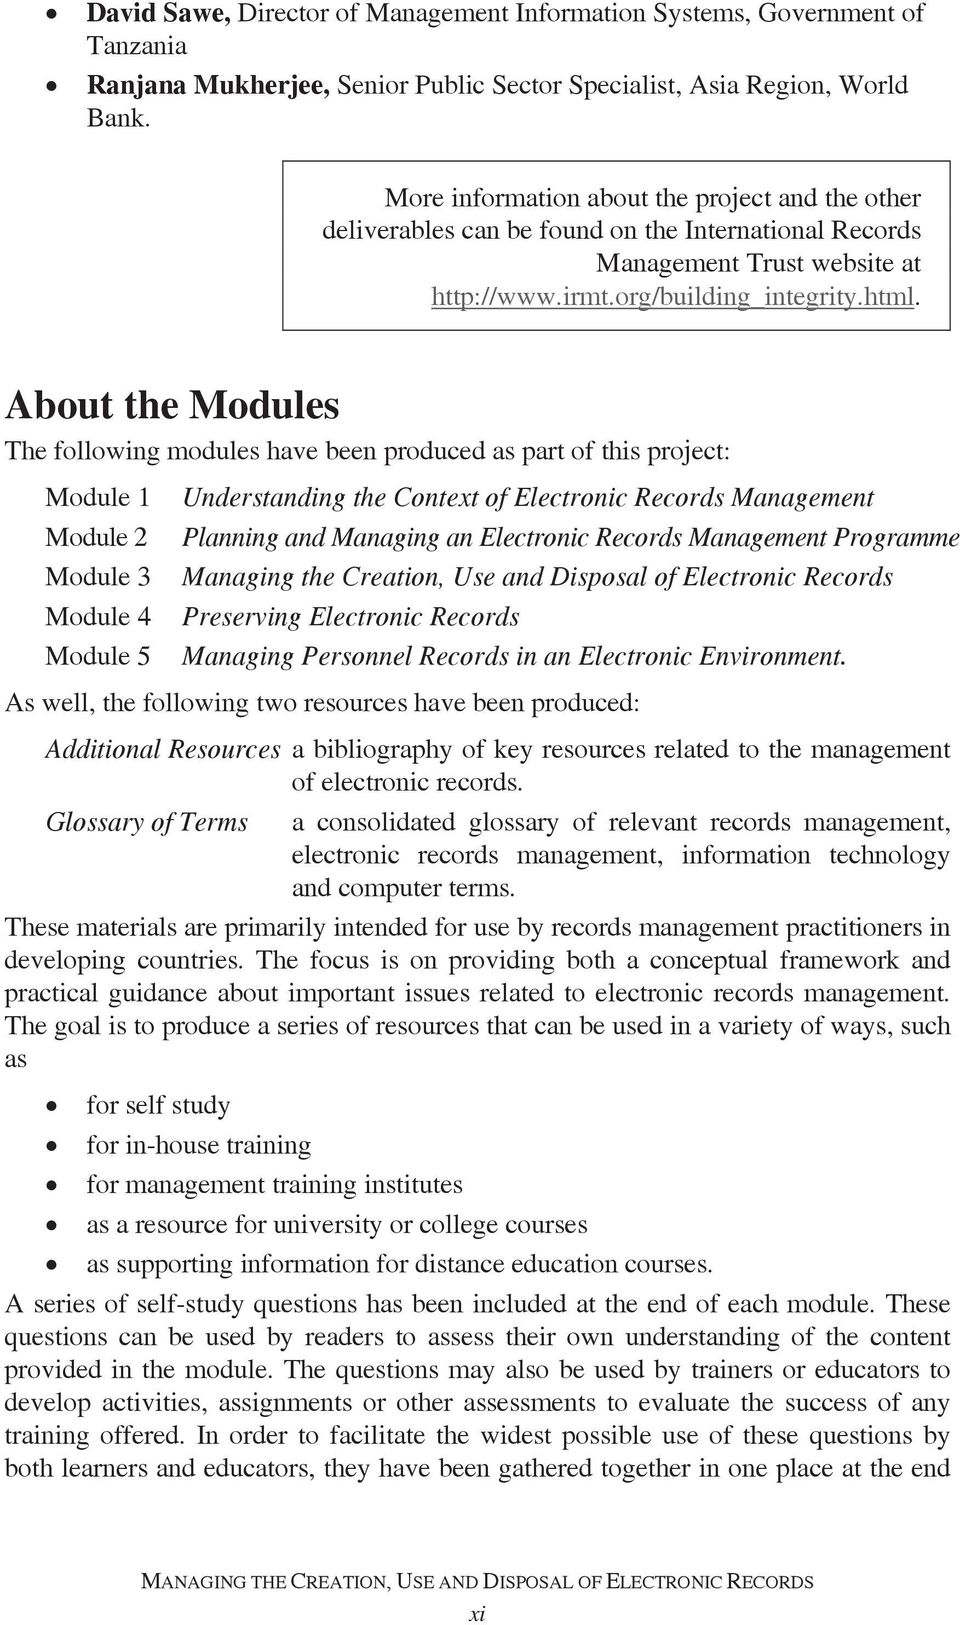 About the Modules The following modules have been produced as part of this project: Module 1 Module 2 Module 3 Module 4 Module 5 Understanding the Context of Electronic Records Management Planning